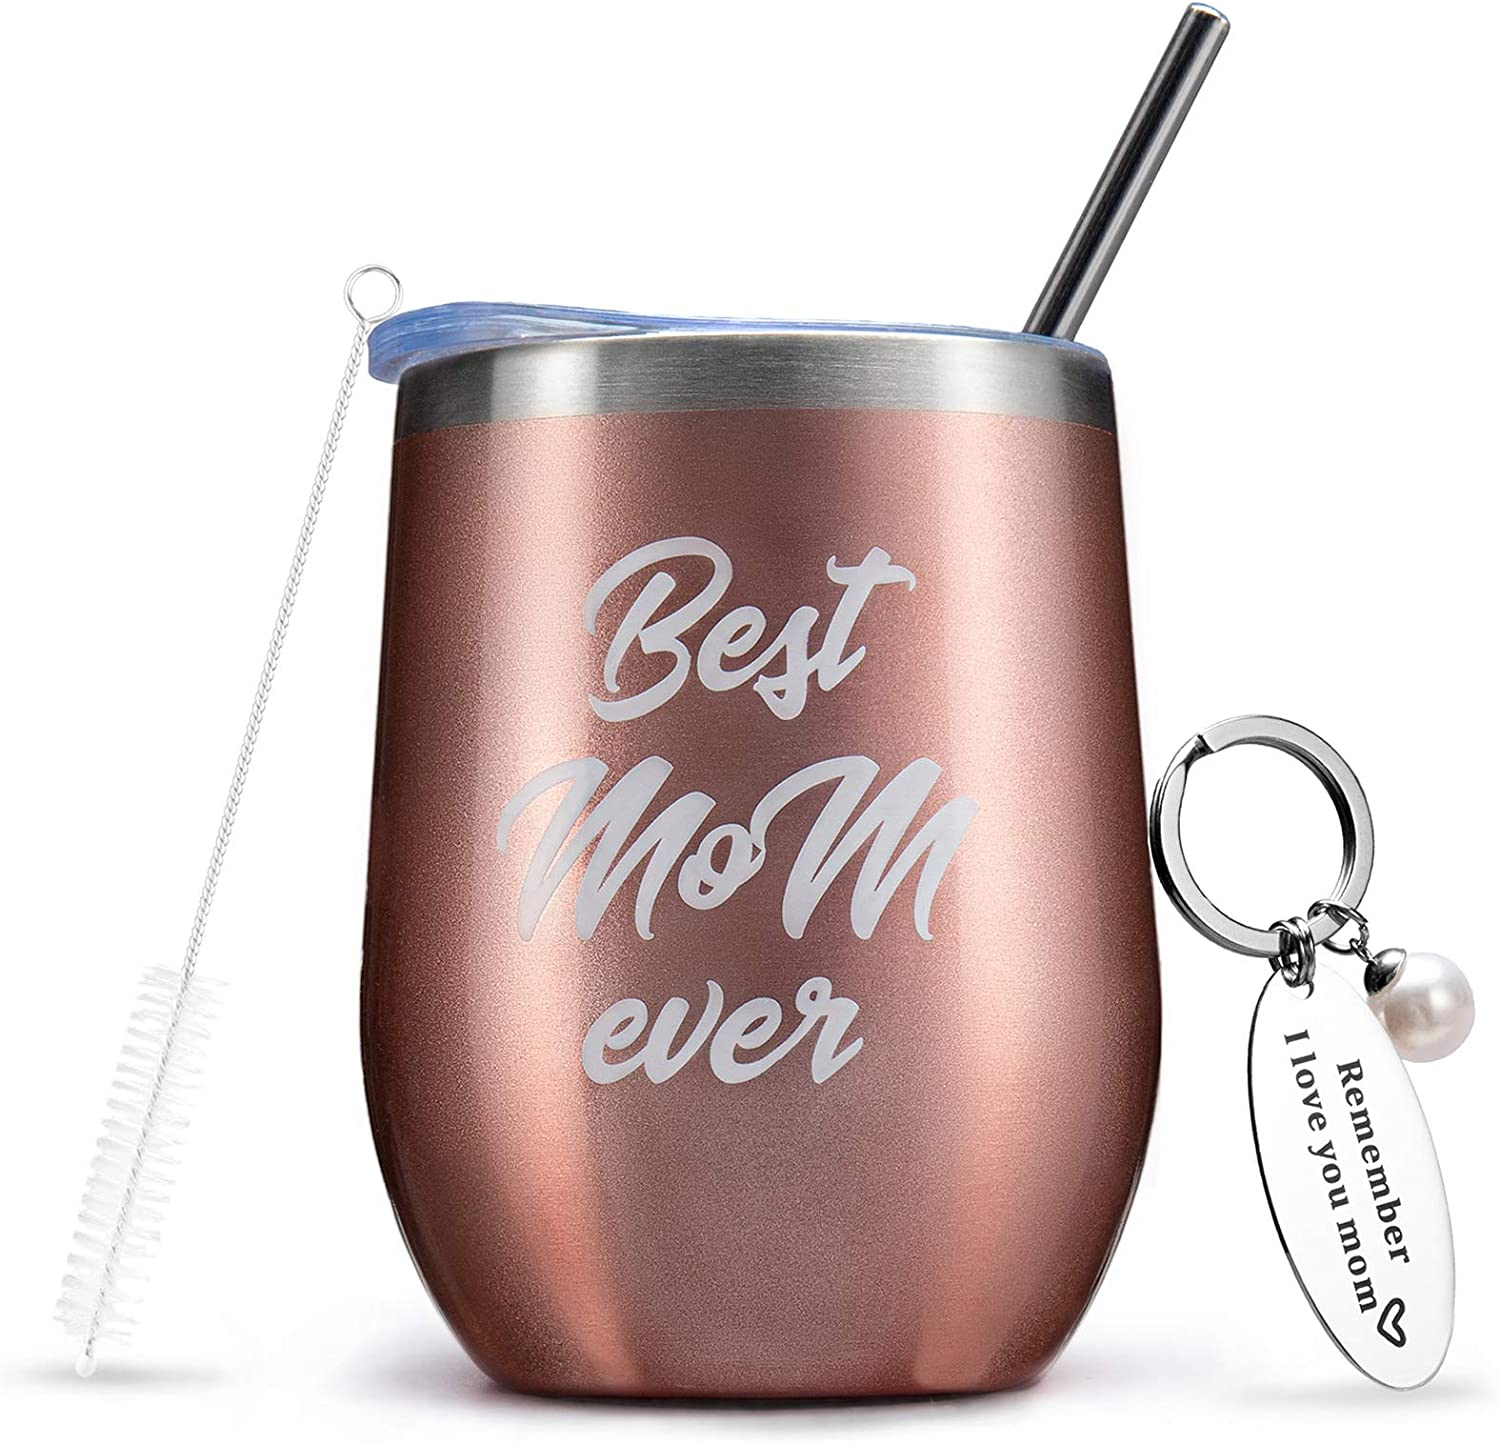 Birthday Gifts for Mom, Best Mom Ever Wine Tumbler with Keychain Funny Sentimental Personalized Gifts for Mom from Son Meaningful, Mothers Day Gifts from Daughter